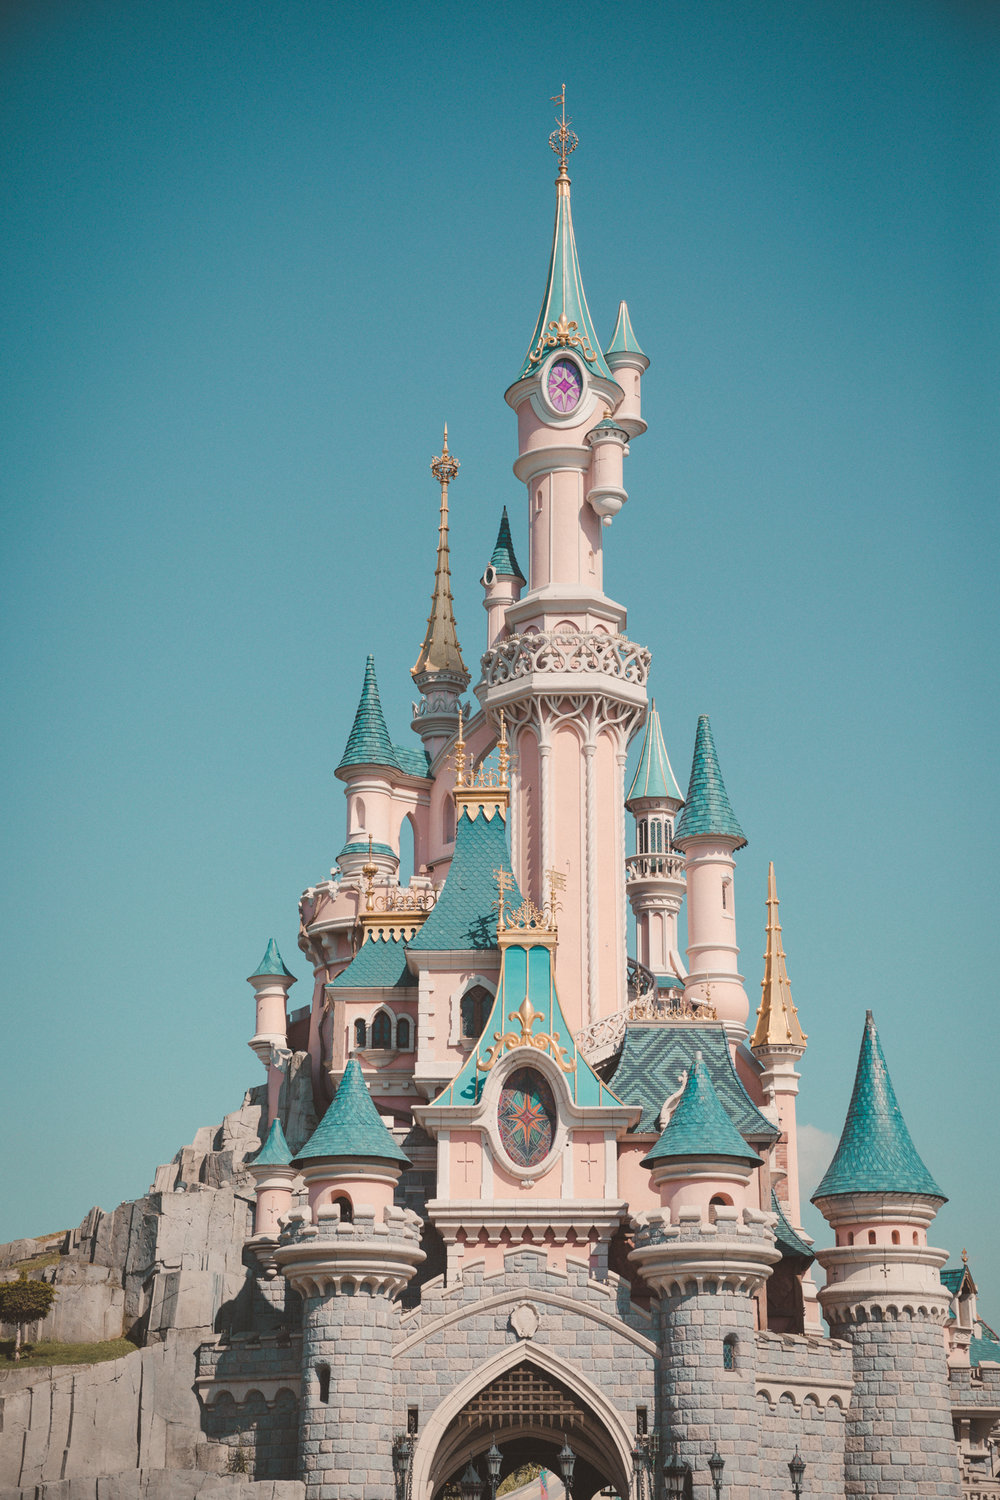 Disneyland Paris Photo Emily Dahl-6.jpg